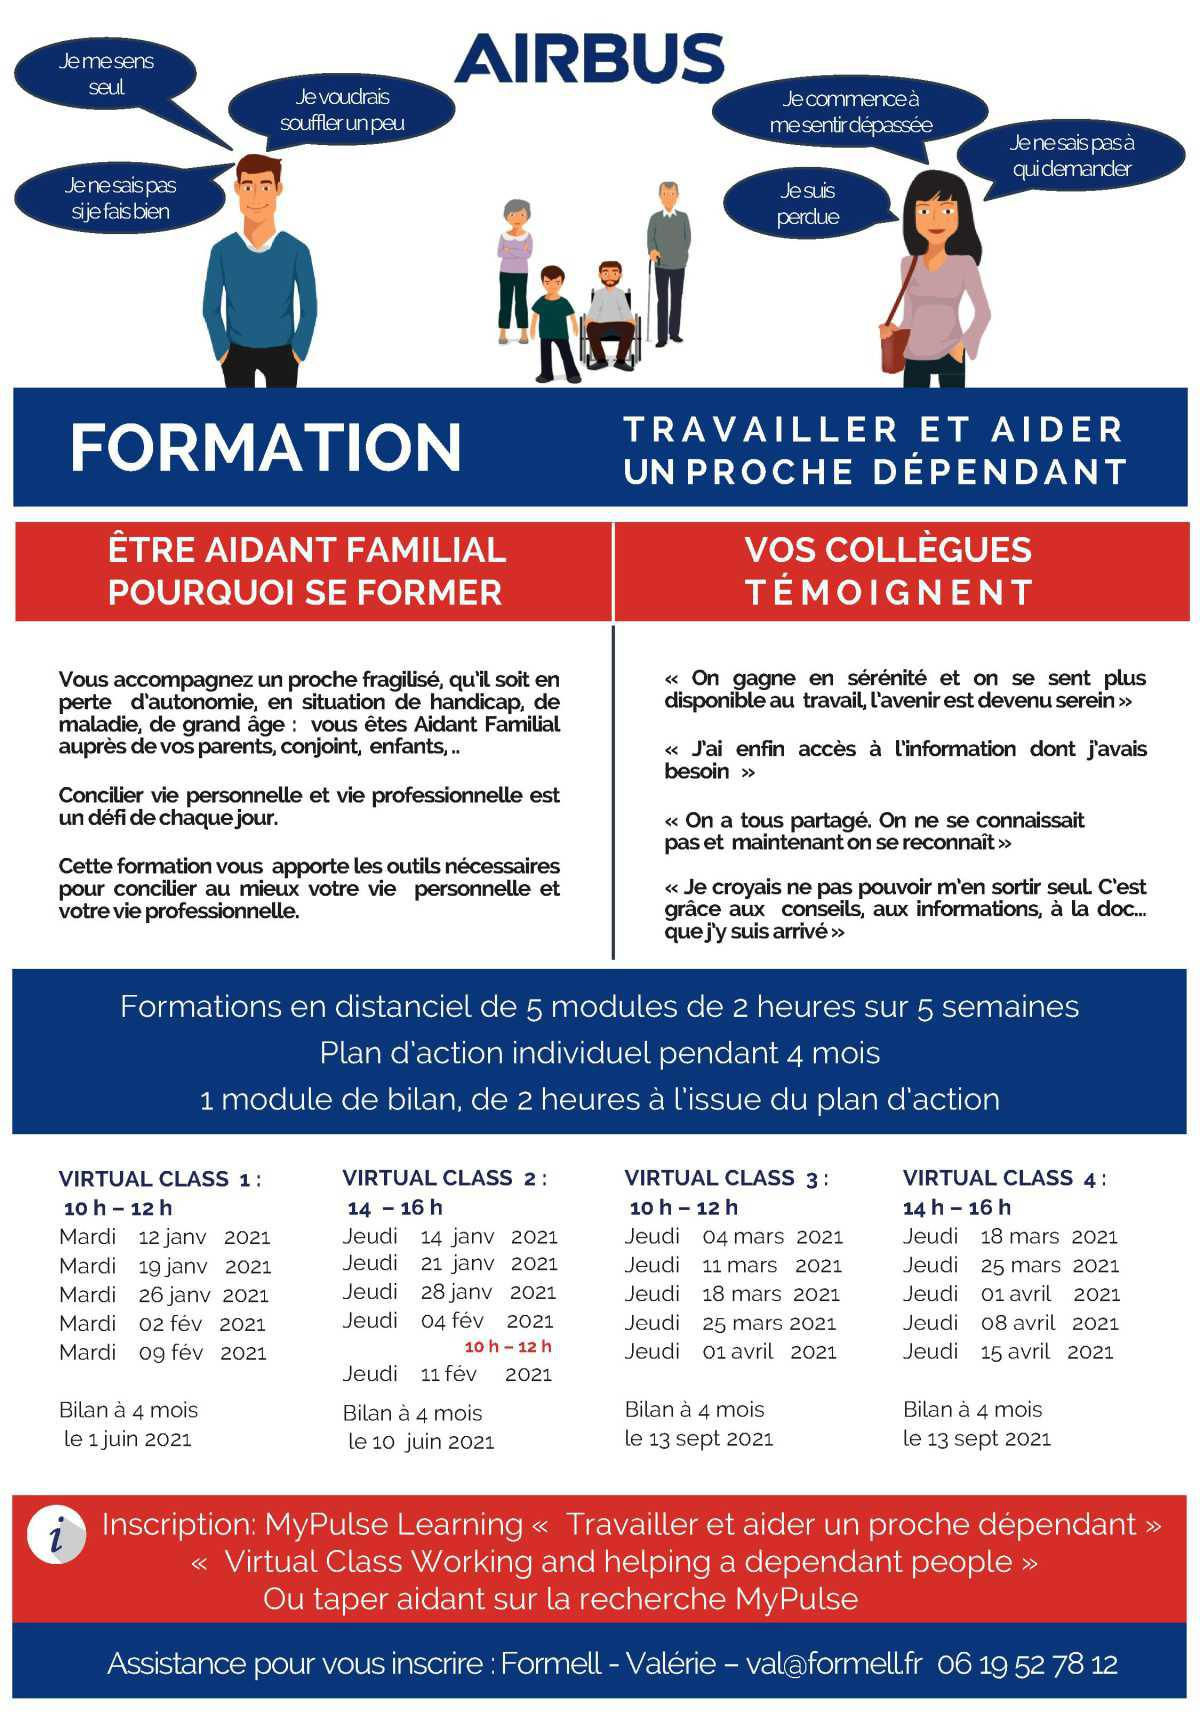 Aidant Familial : Des formations sont disponibles sous MyPulse Learning